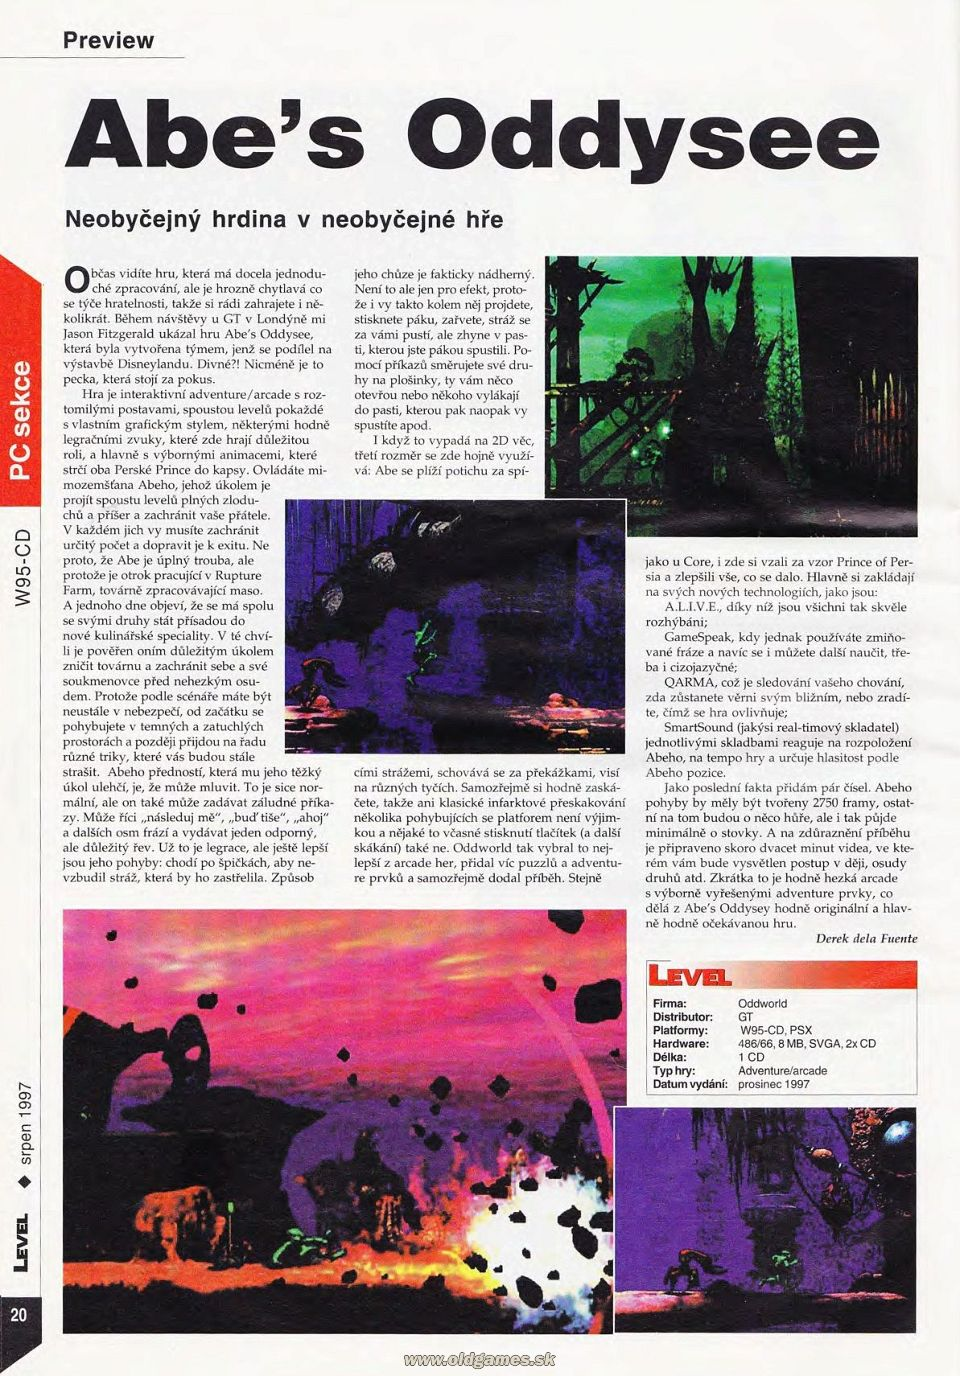 Preview: Abe's Oddysee